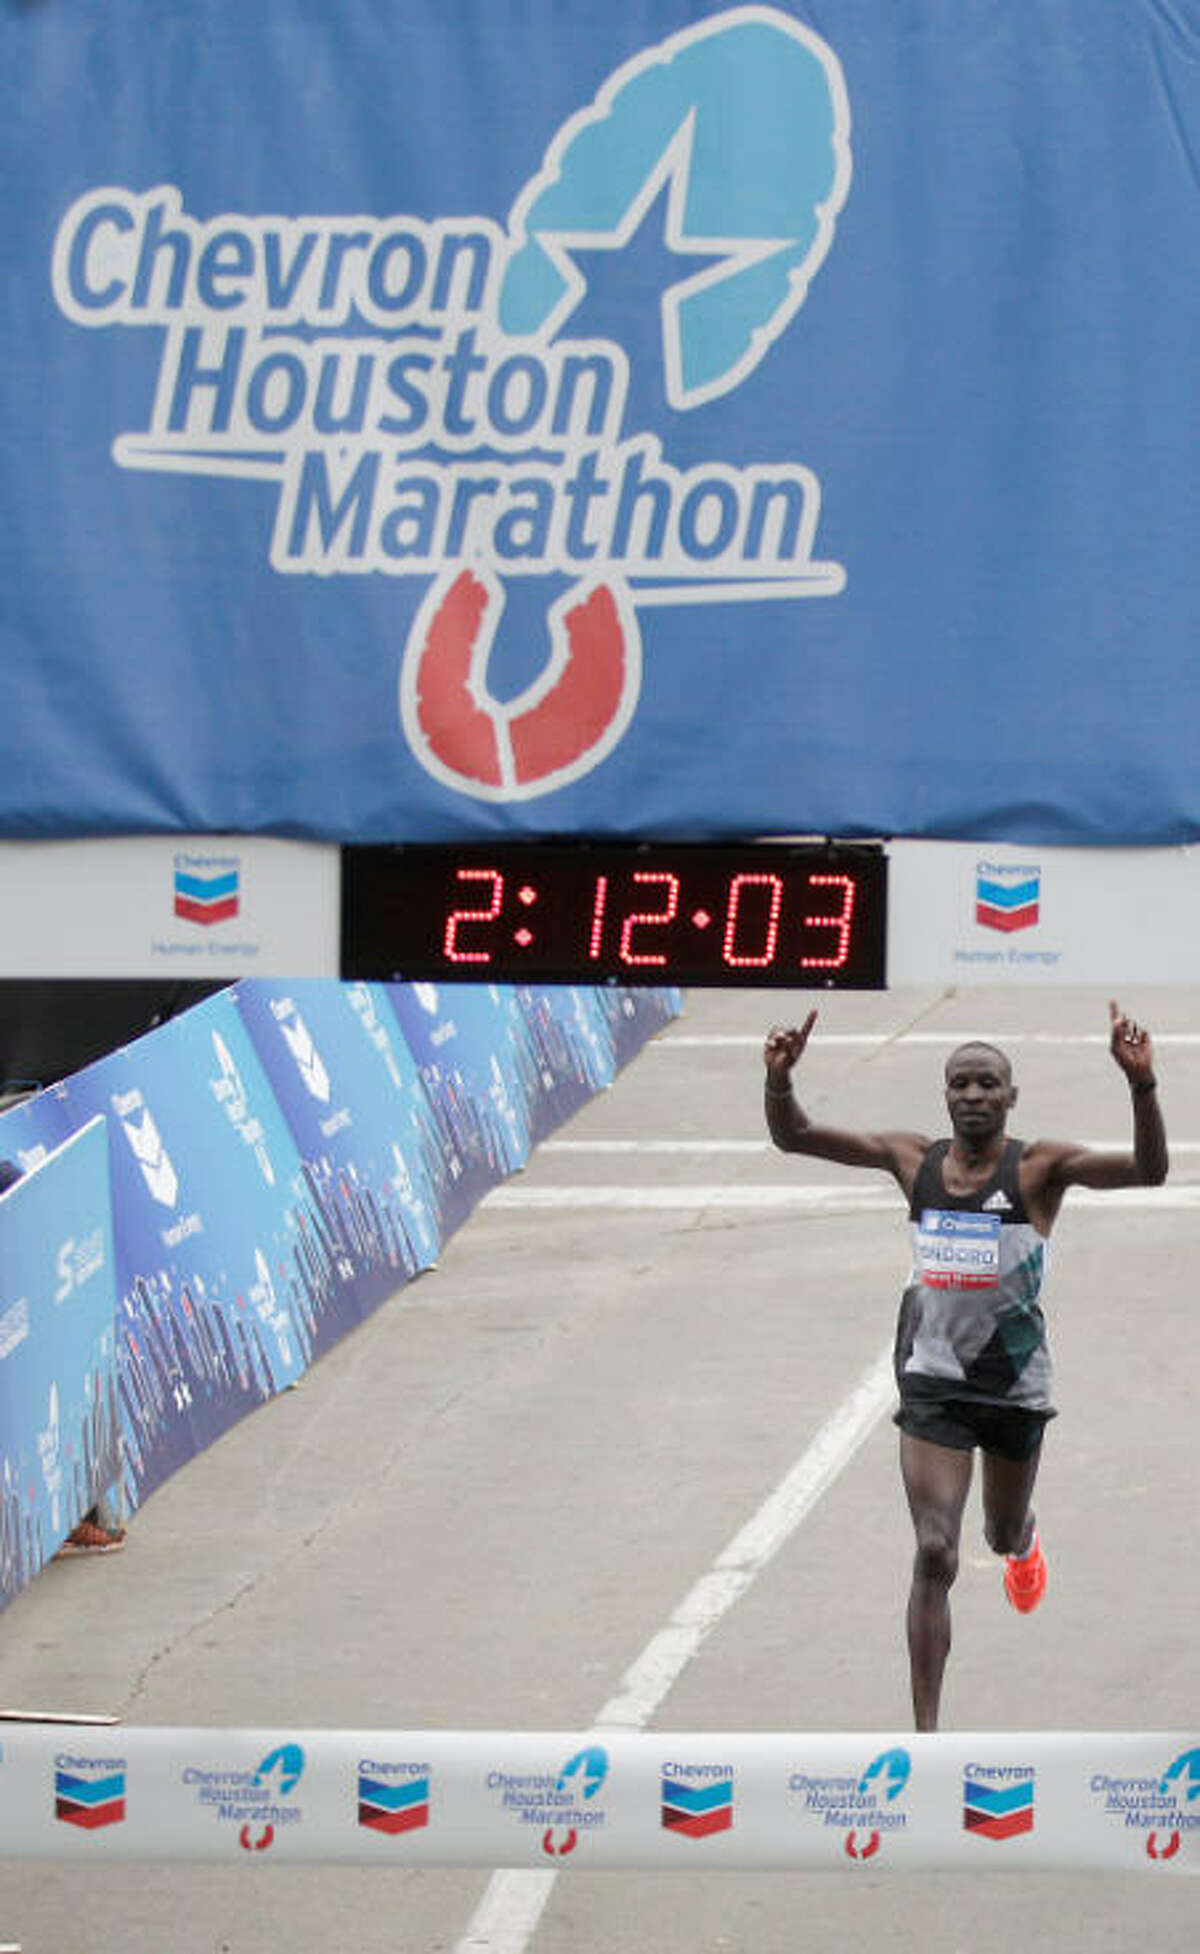 Kenyan Dominic Ondoro took the men's division in the Chevron Houston Marathon in 2 hours and 12 minutes.